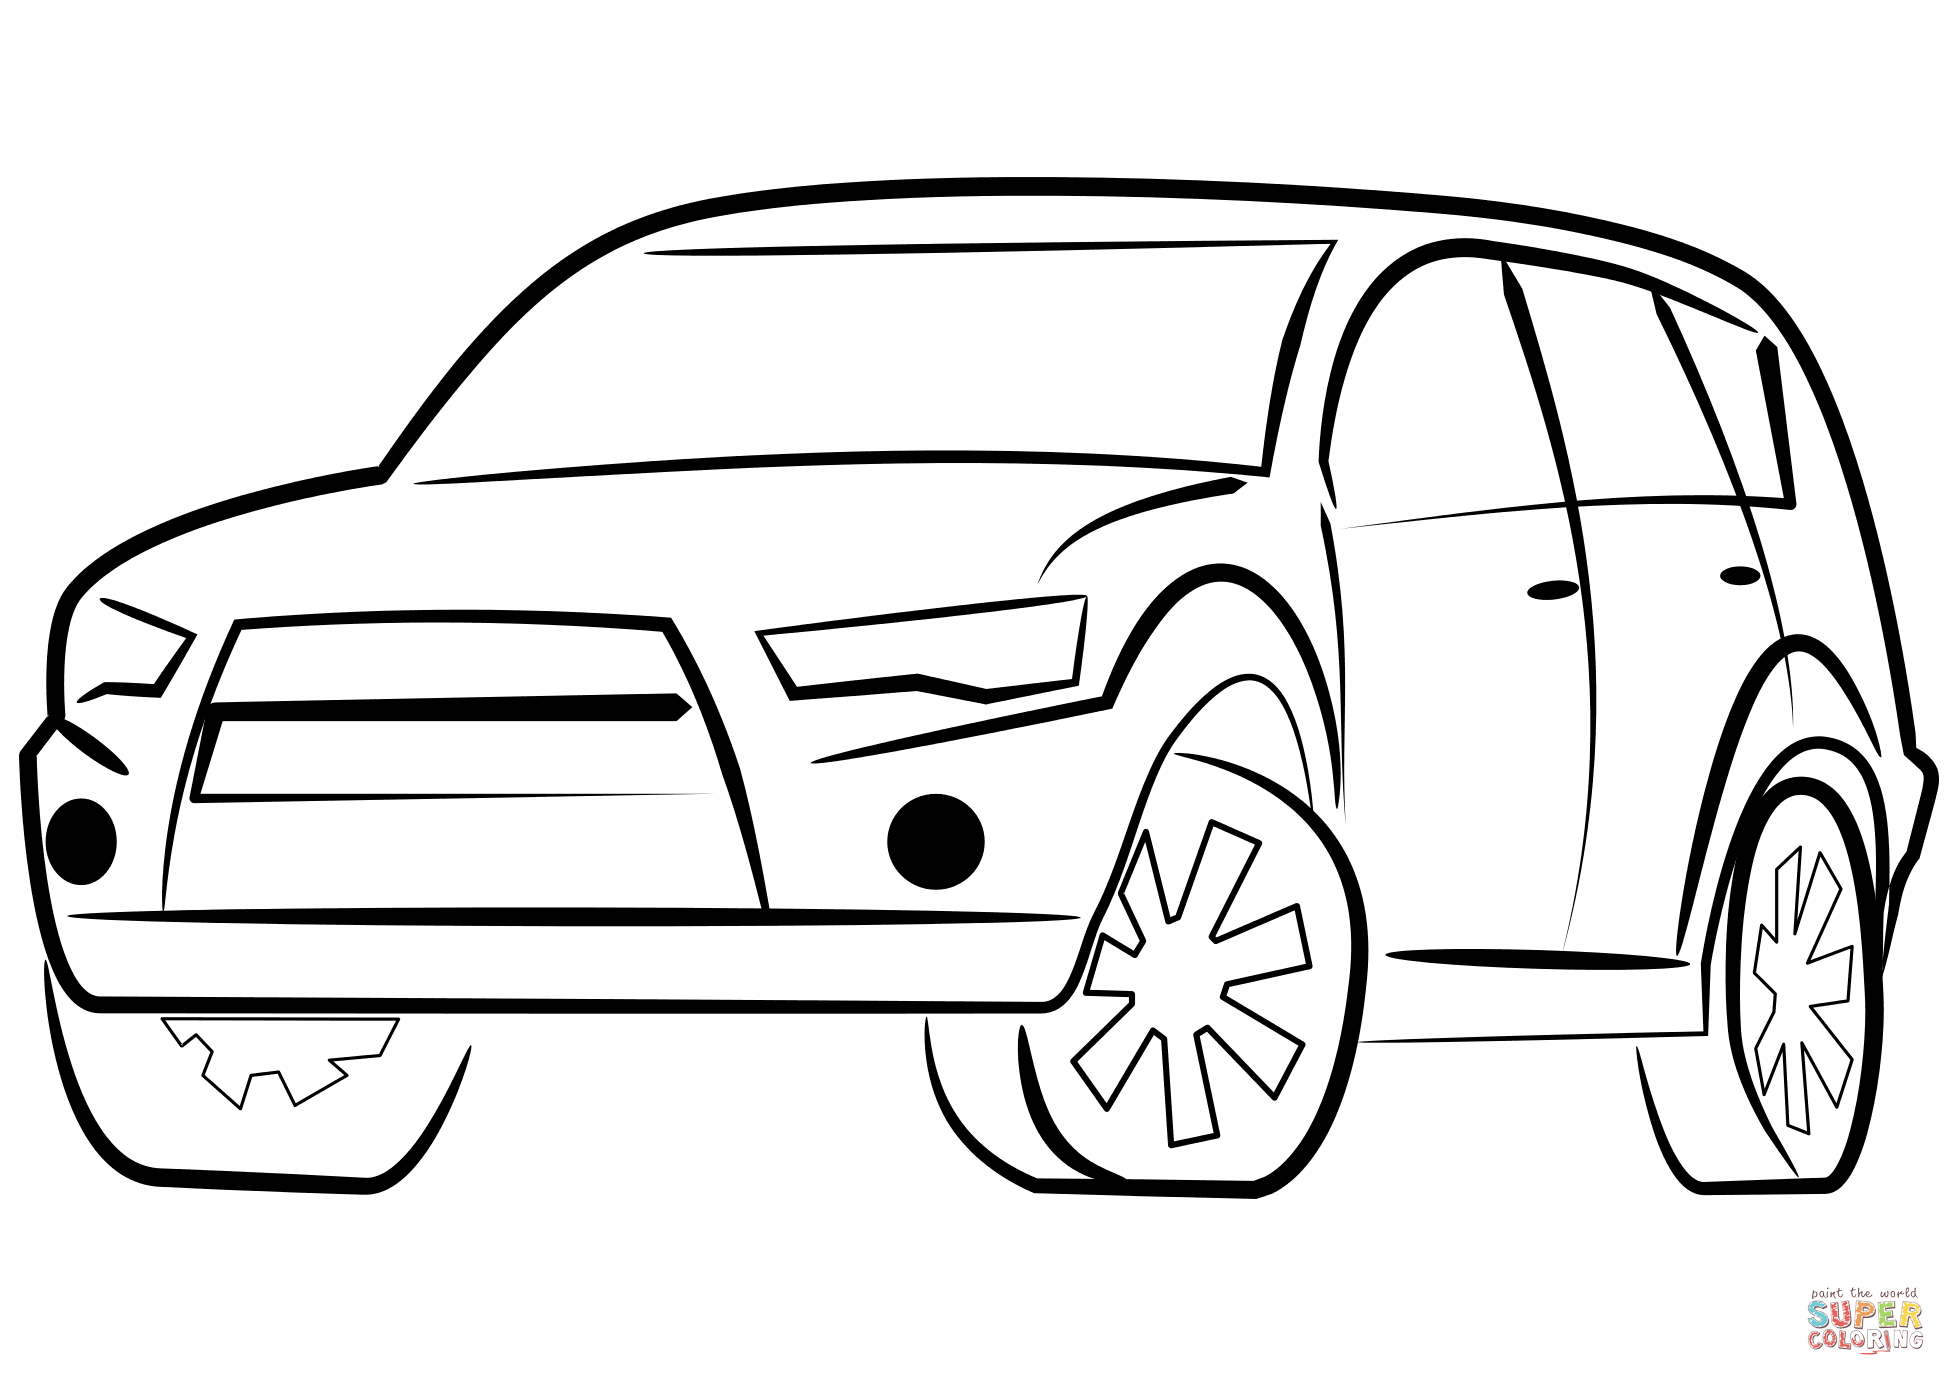 picture of a car to color race car coloring pages coloring pages for kids of color car to picture a